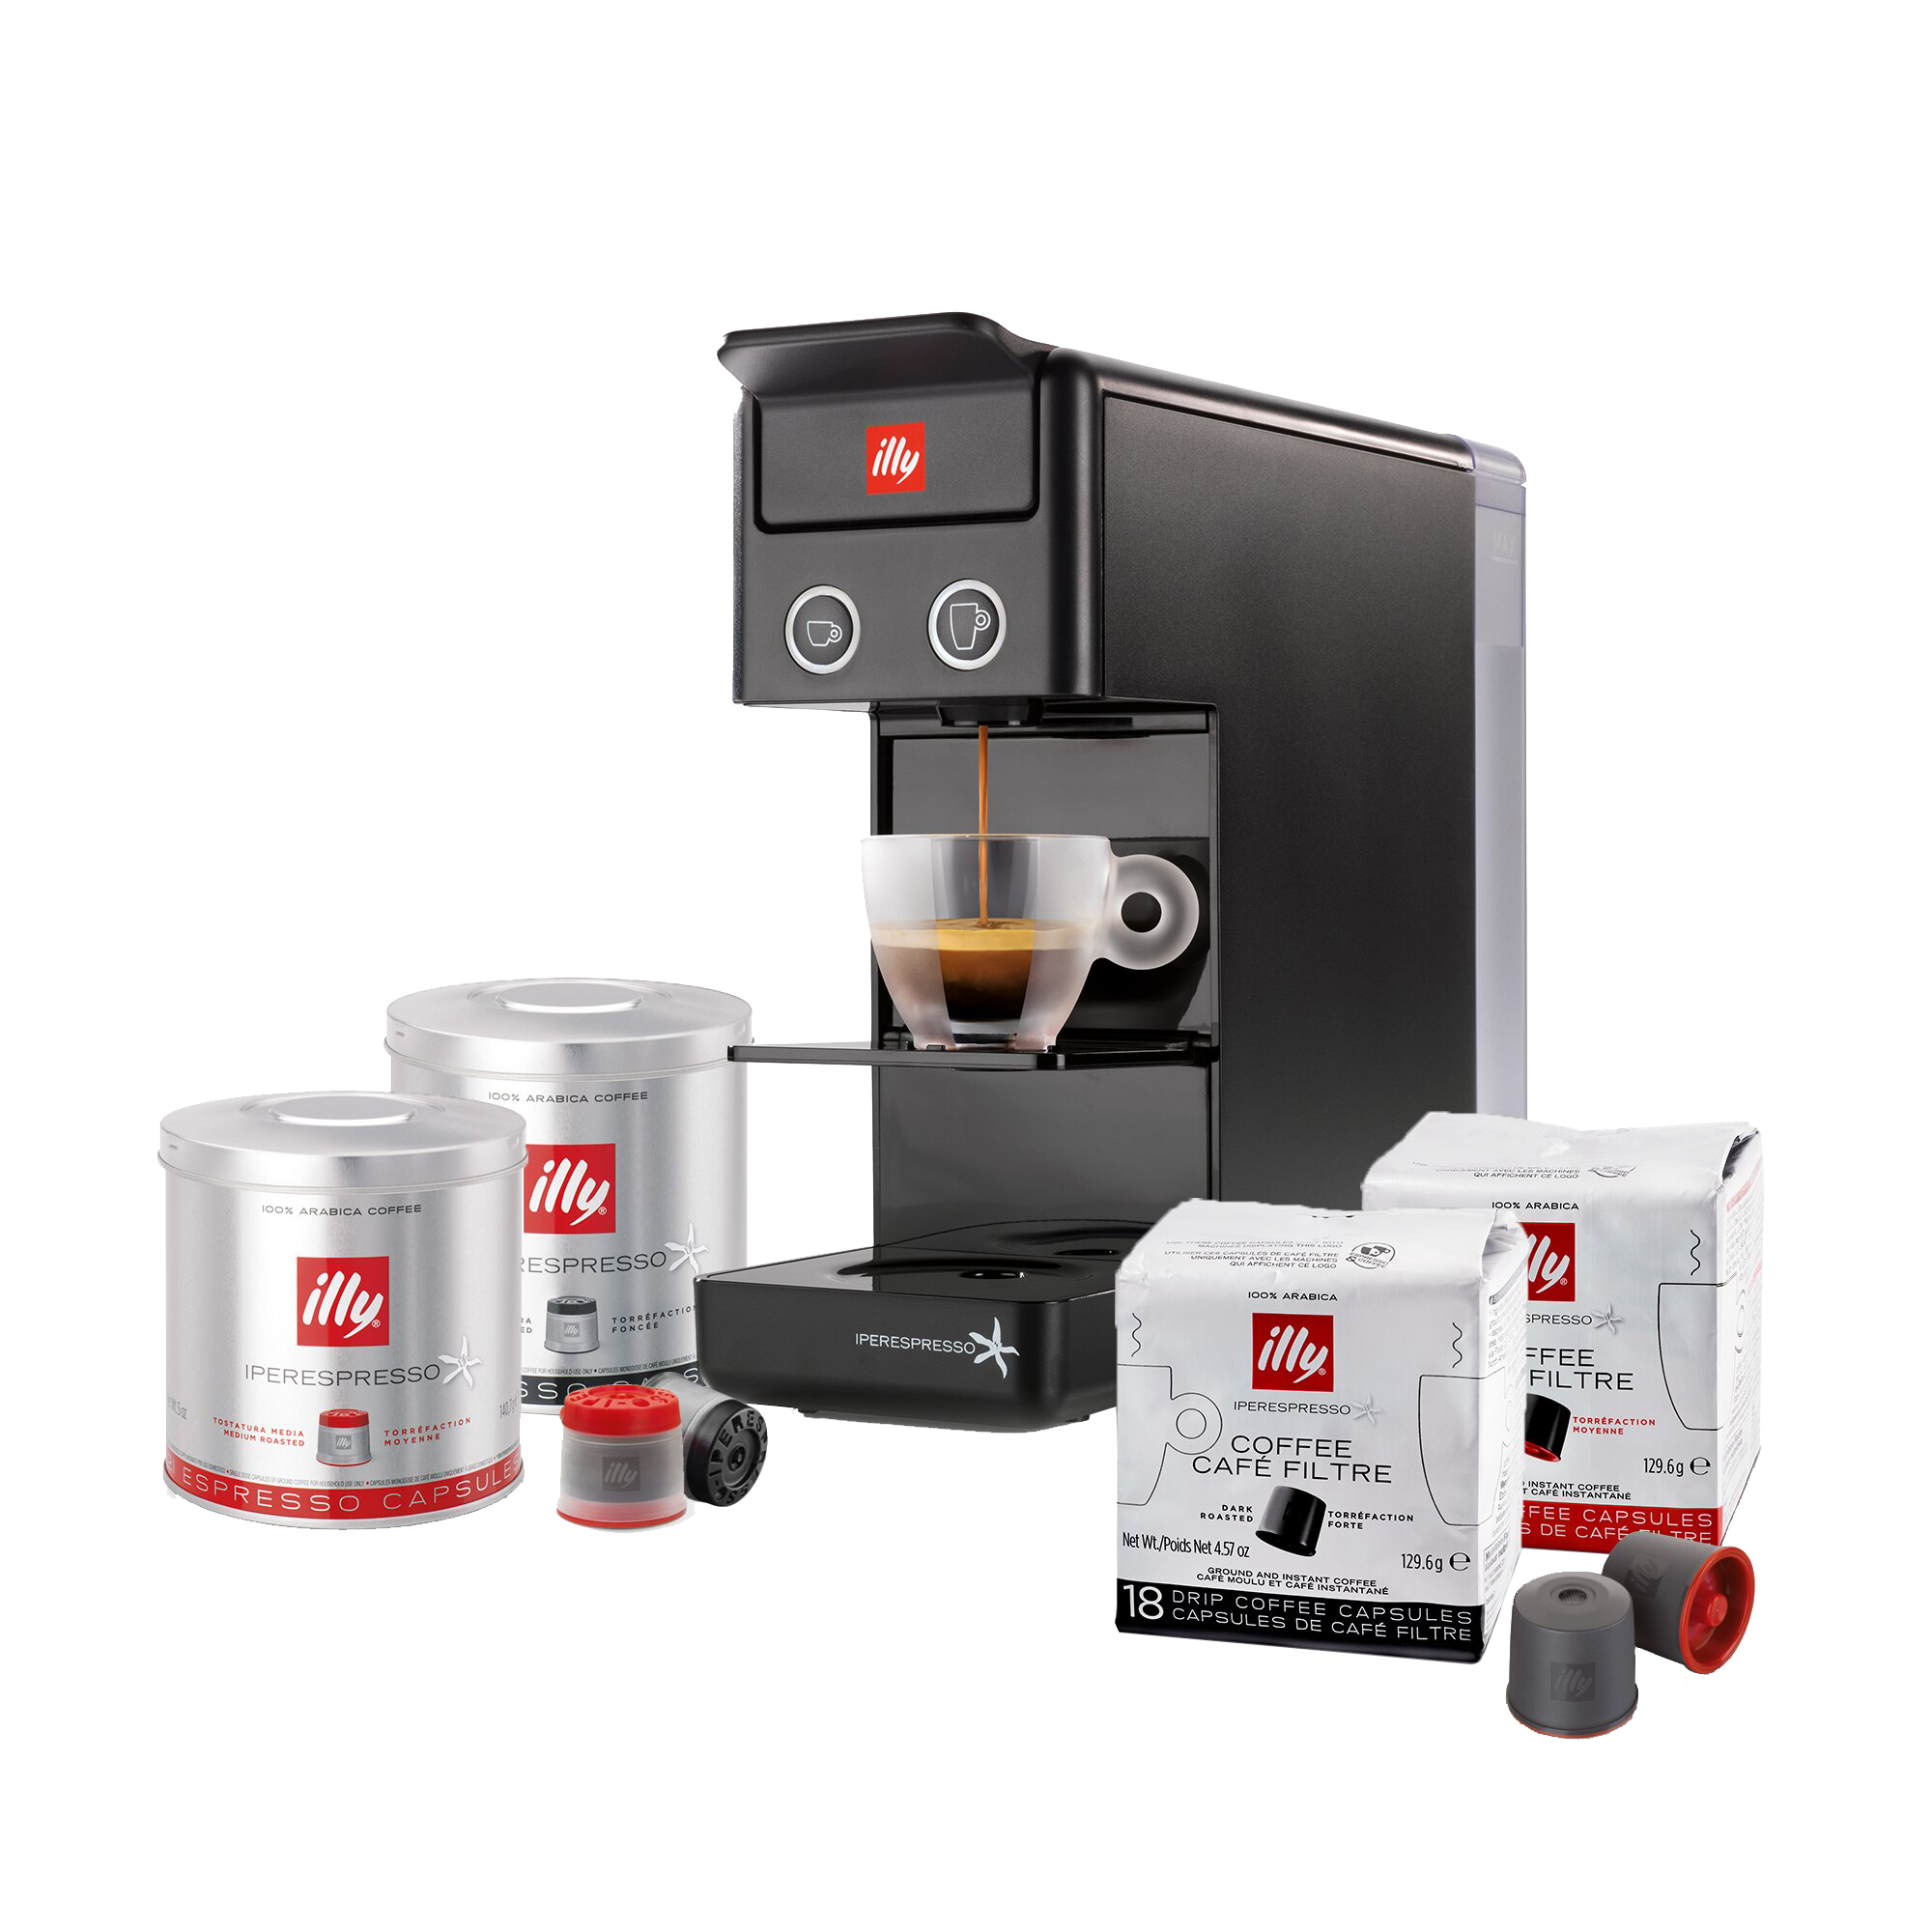 Y3.3 Home Coffee Break Bundle - Black